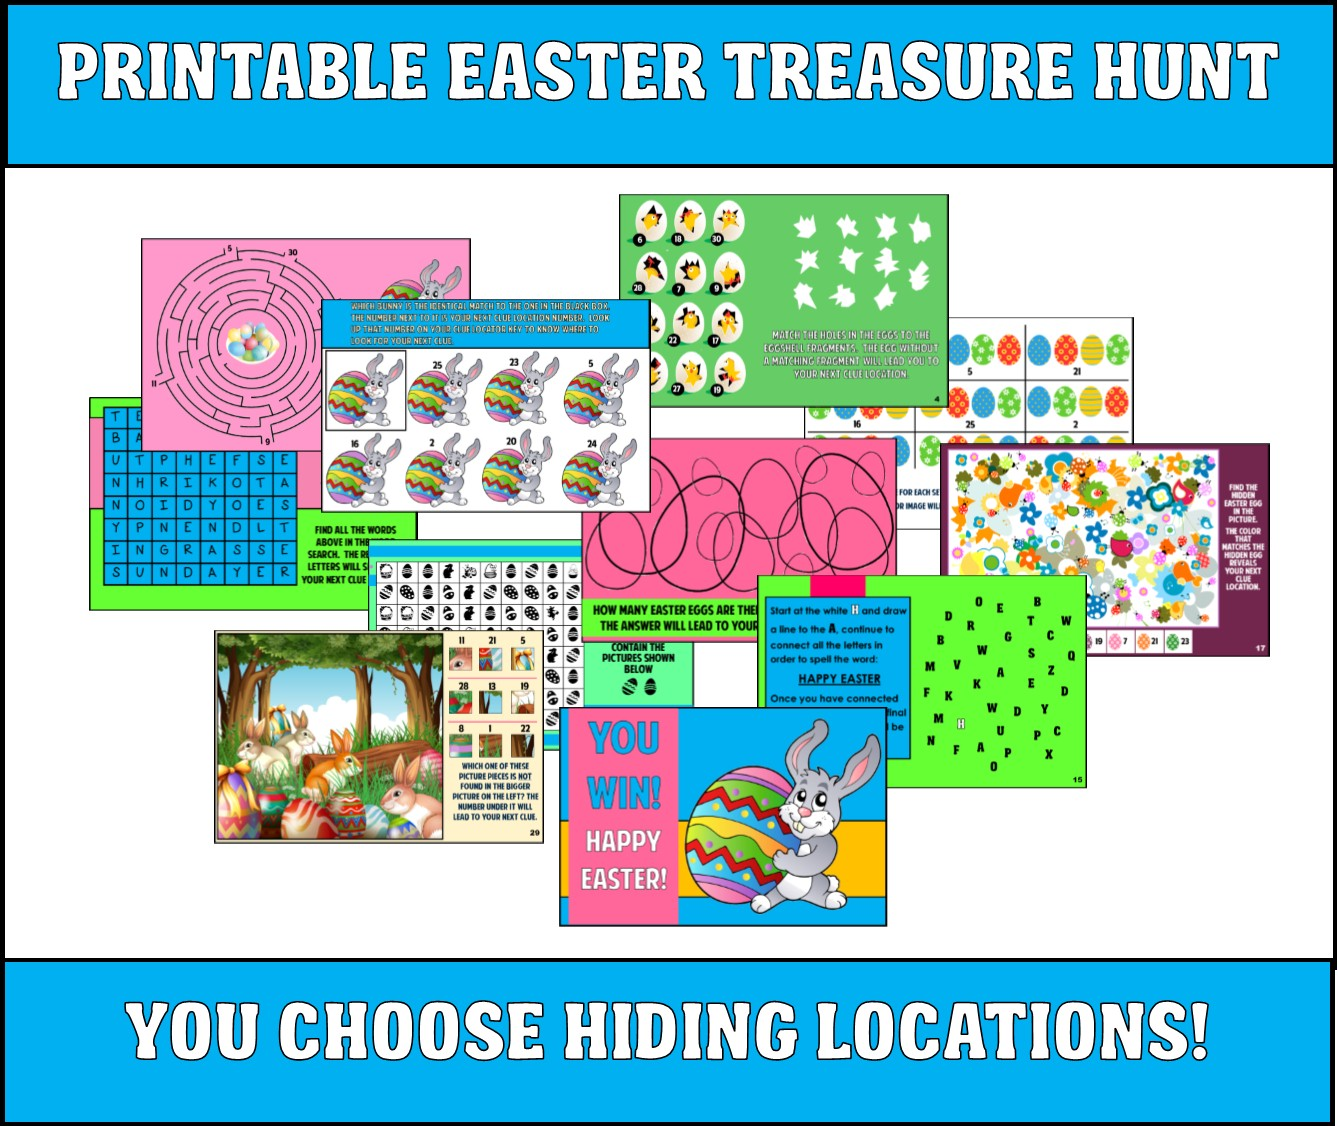 image about Printable Easter Egg Hunt Clues referred to as Printable Easter Treasure Hunt